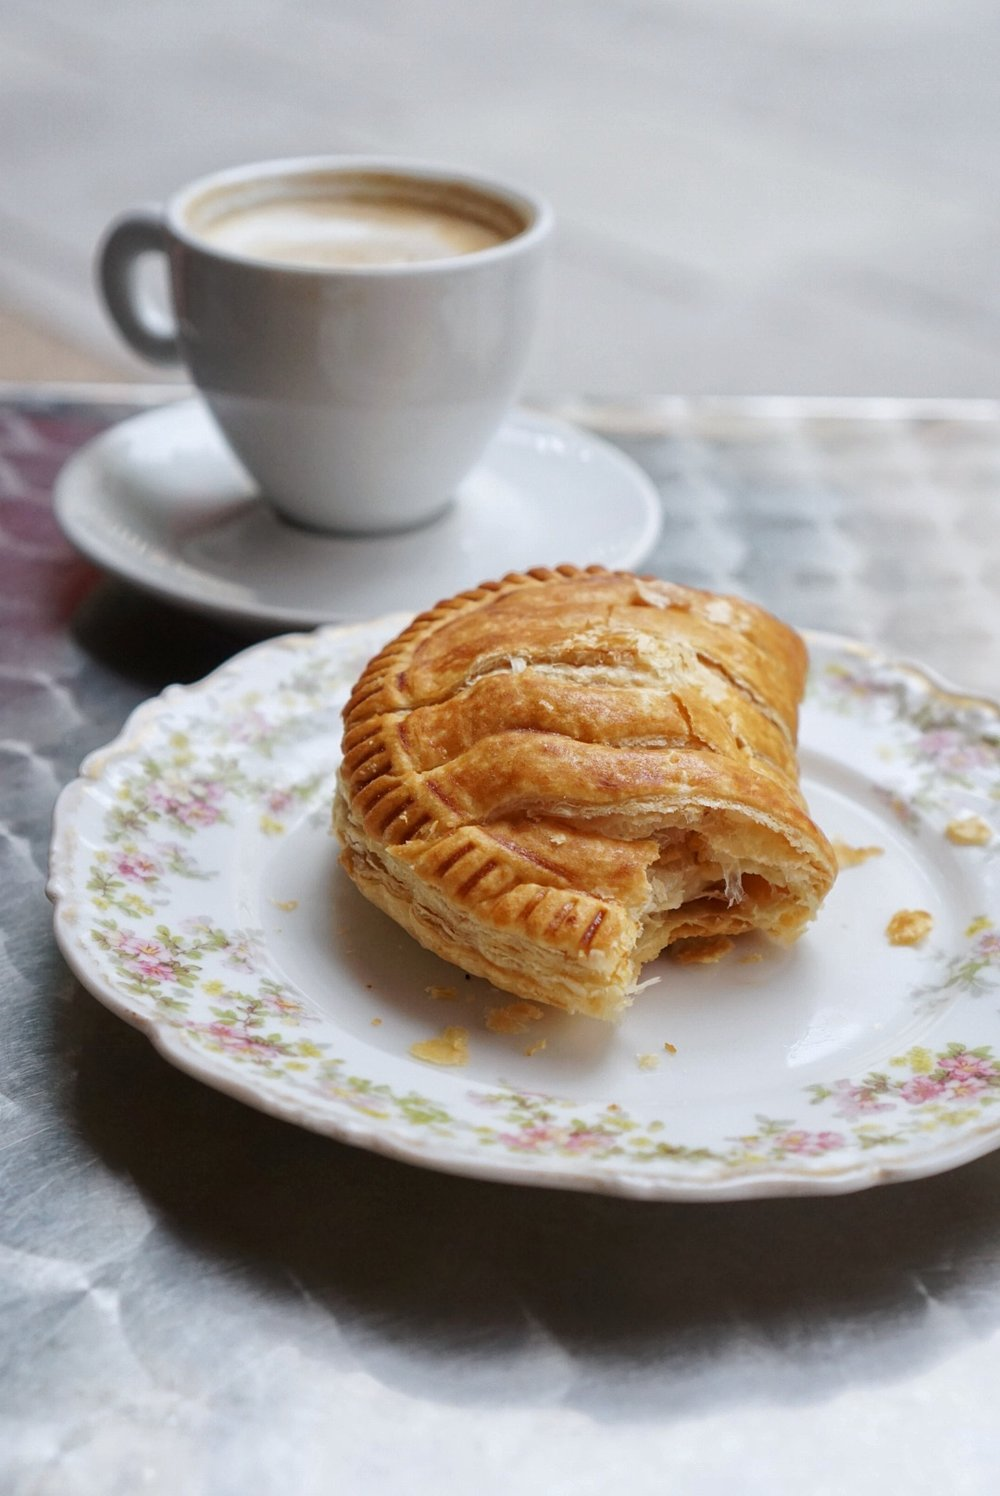 Apple Turnover Coffee.JPG